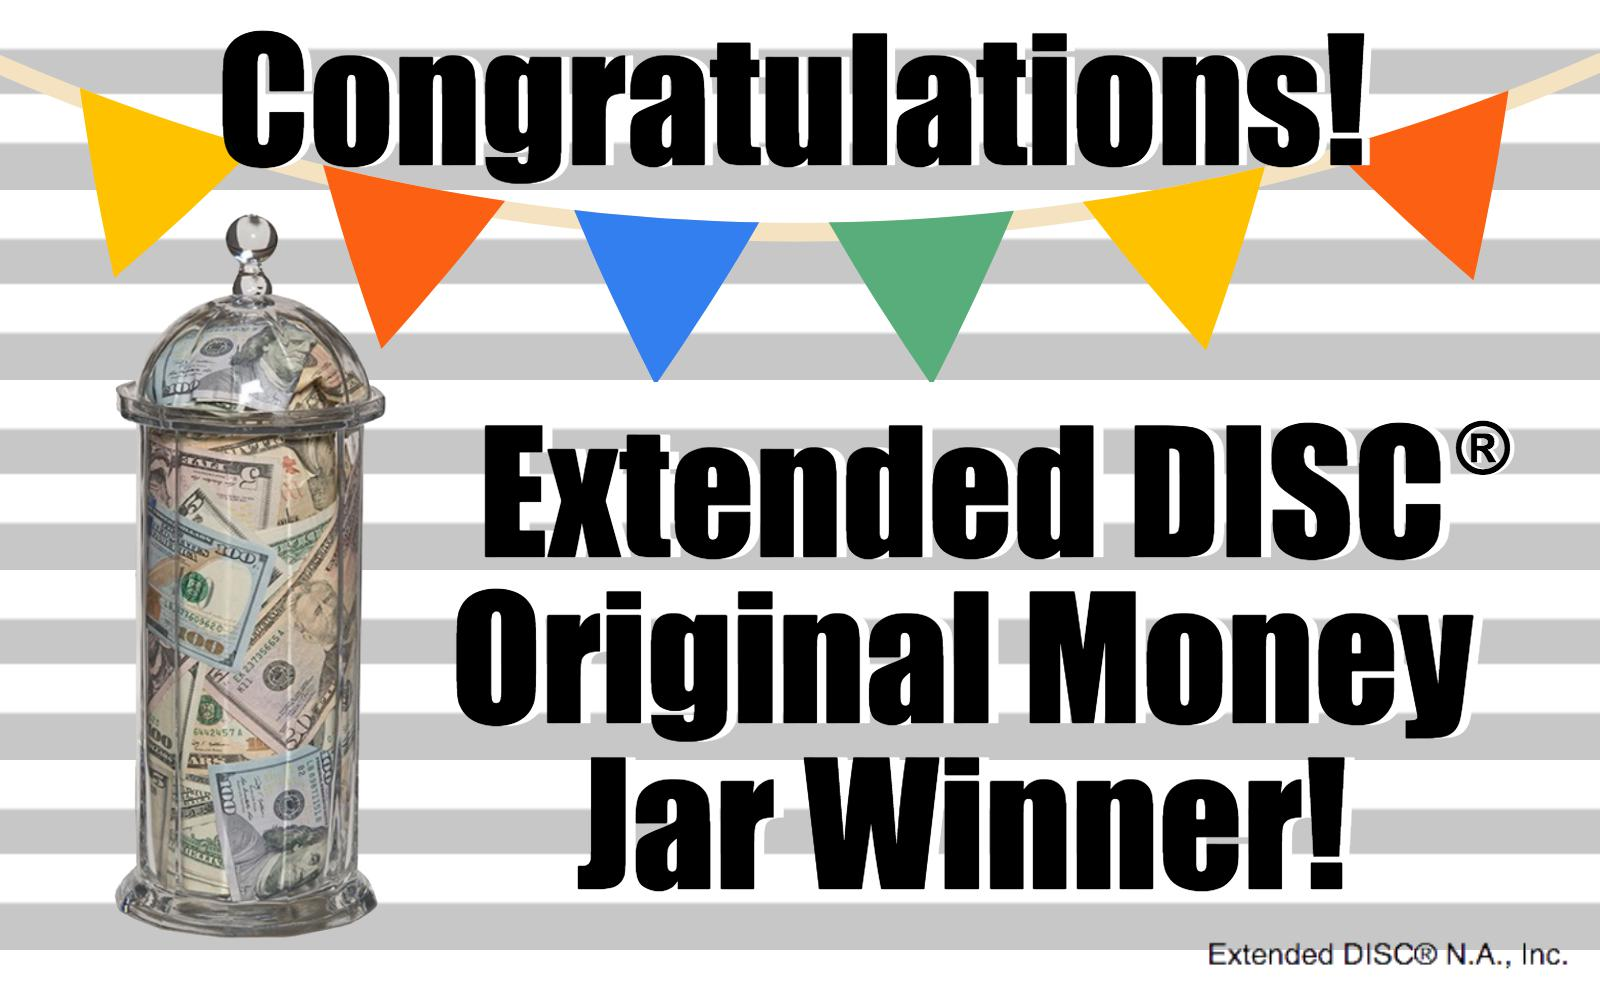 Extended DISC Money Jar Winner